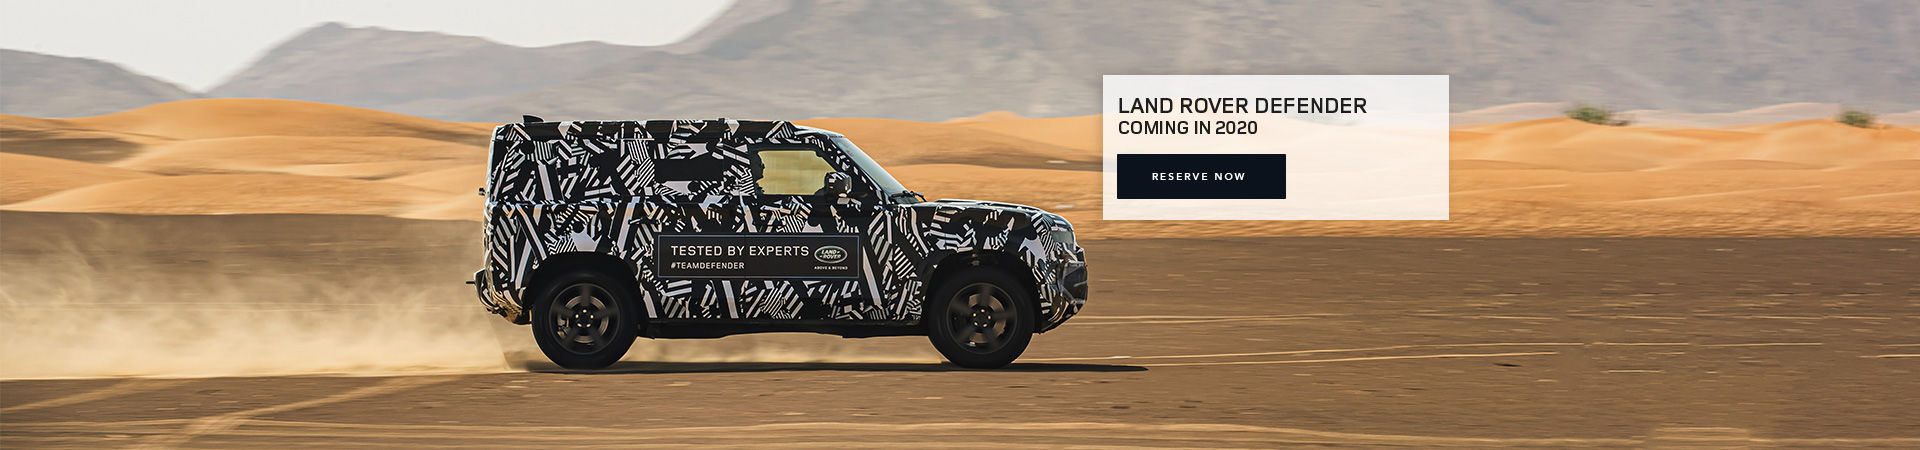 The 2020 Land Rover Defender